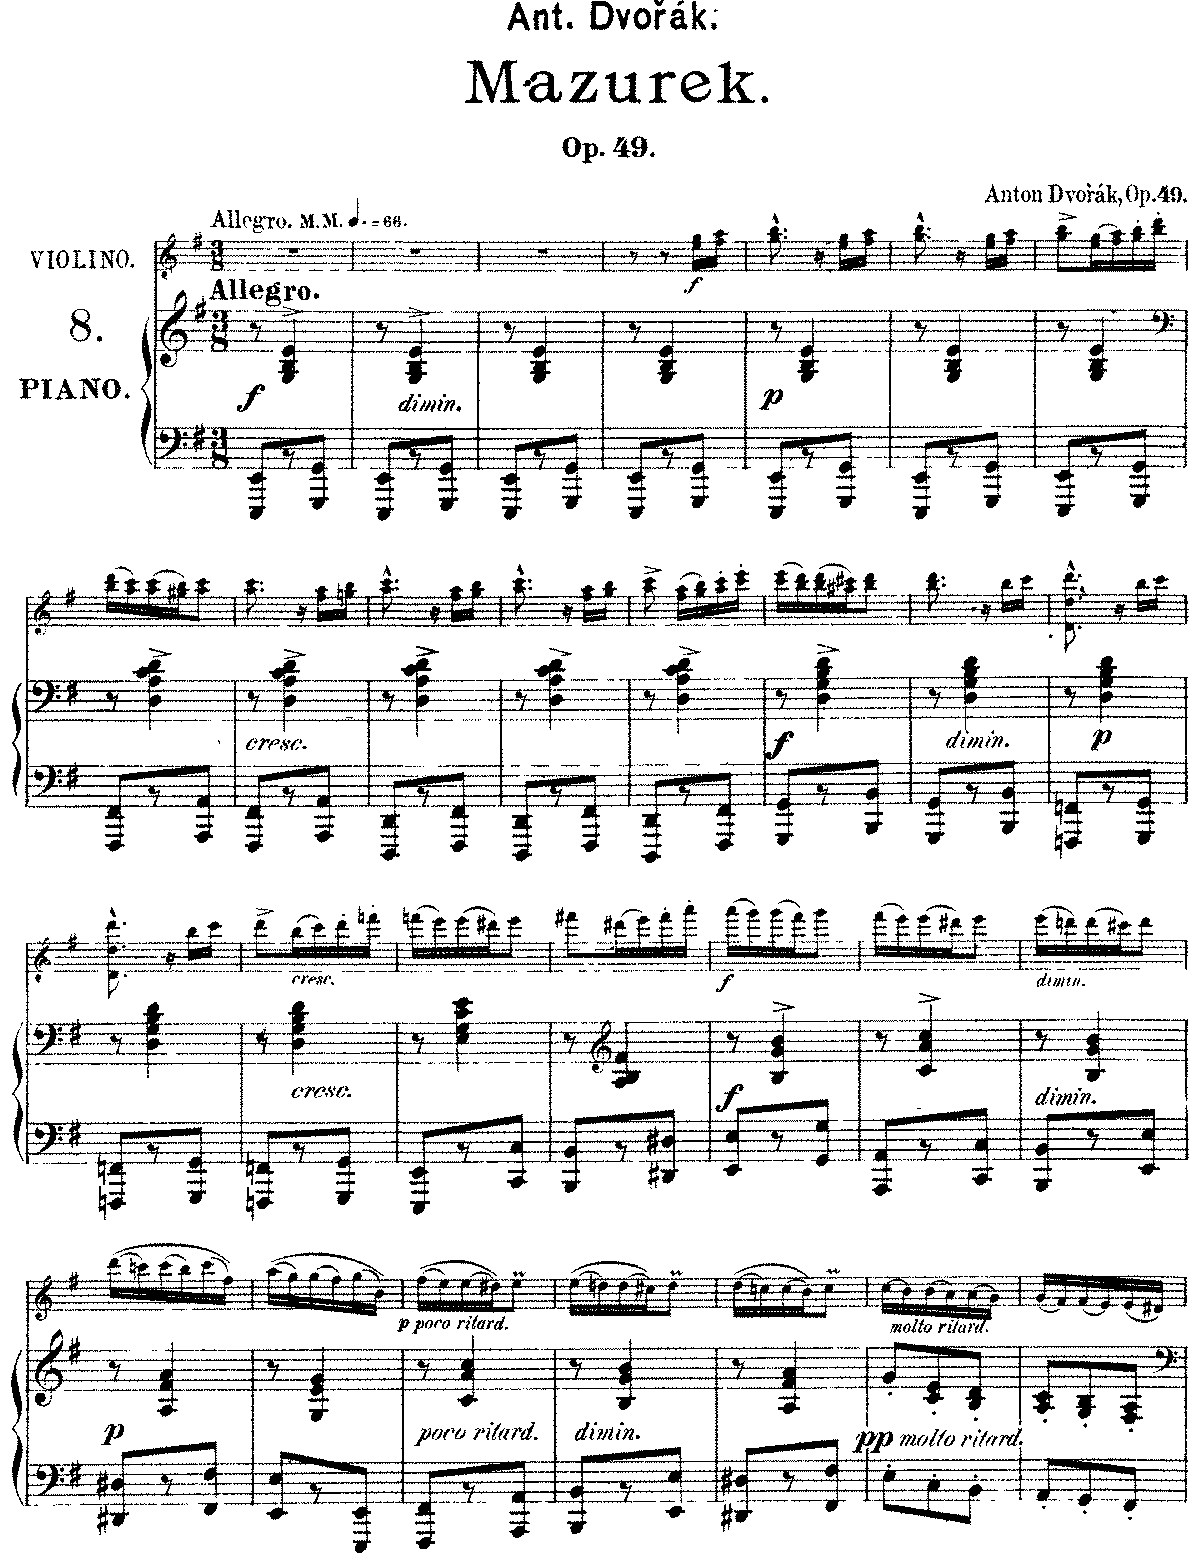 Dvorak - Op.49 - Mazurka for Violin and Piano.pdf